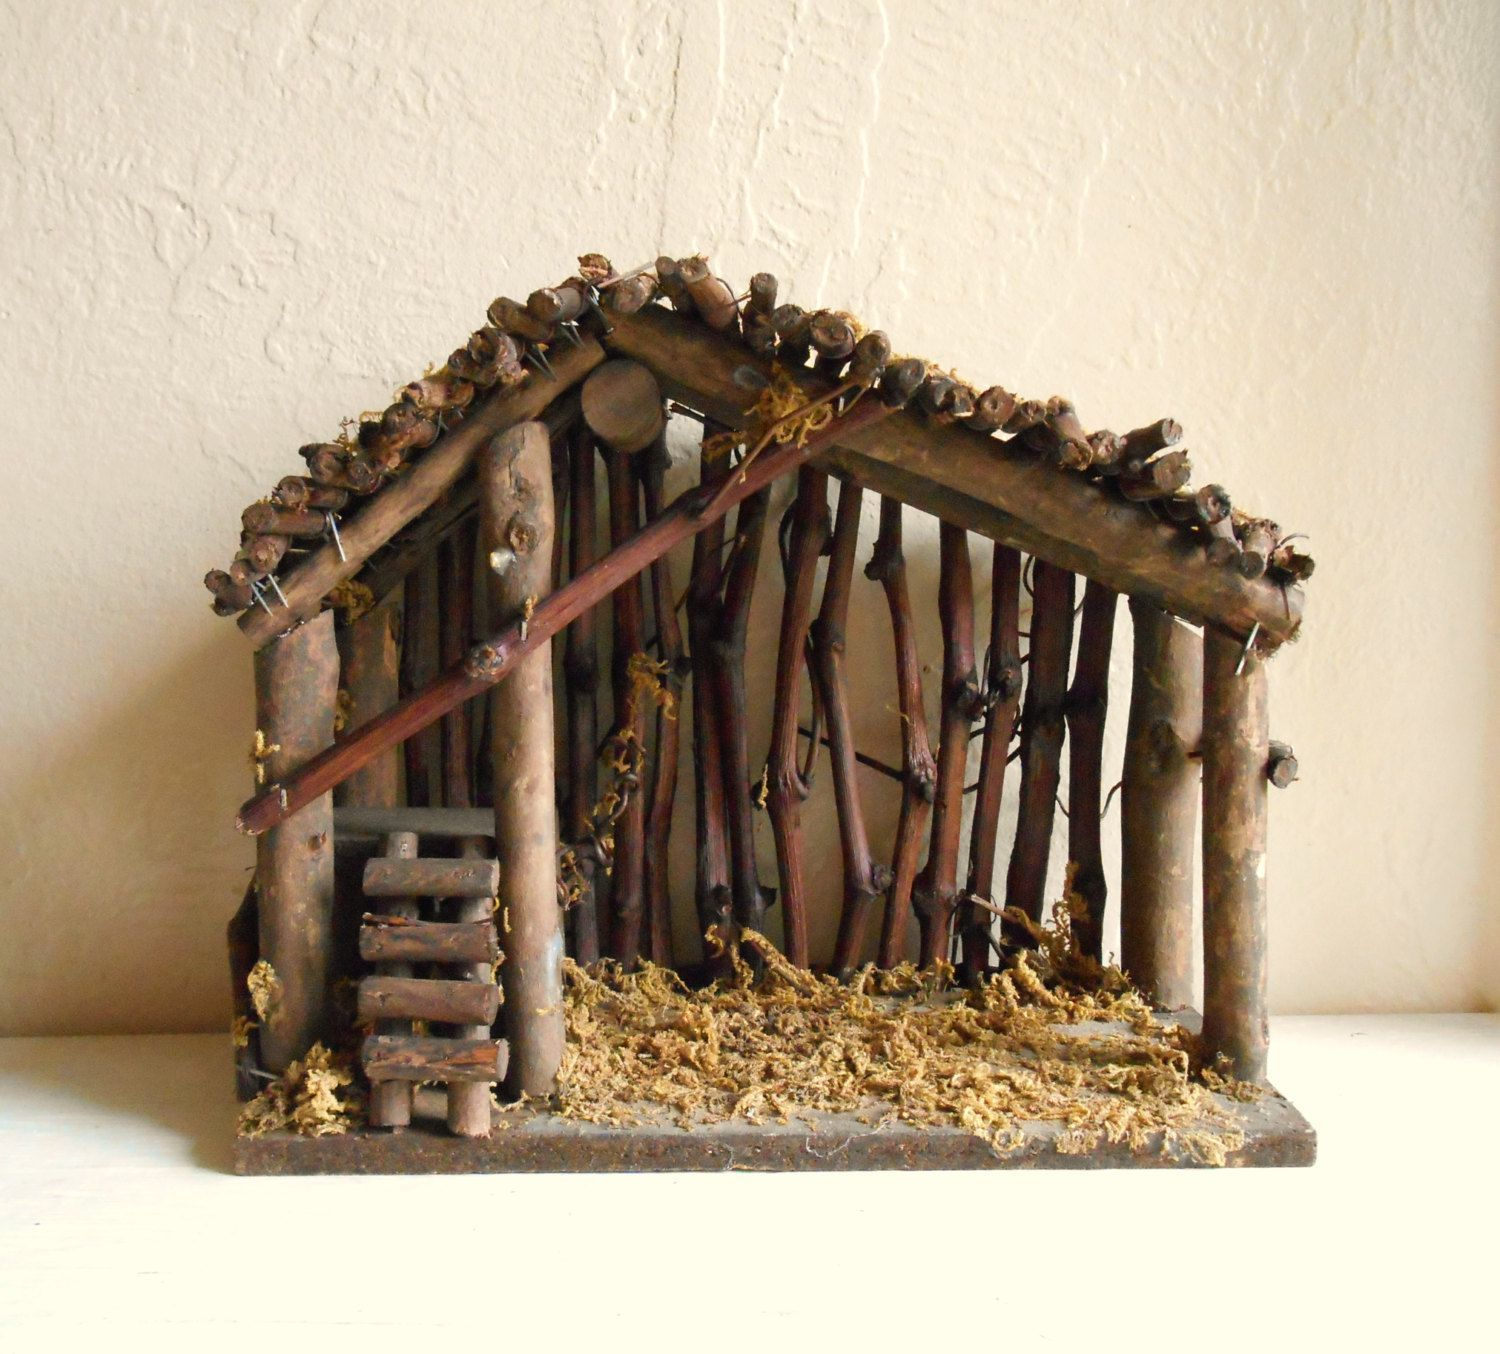 This is a wood manger ready to be set up with your